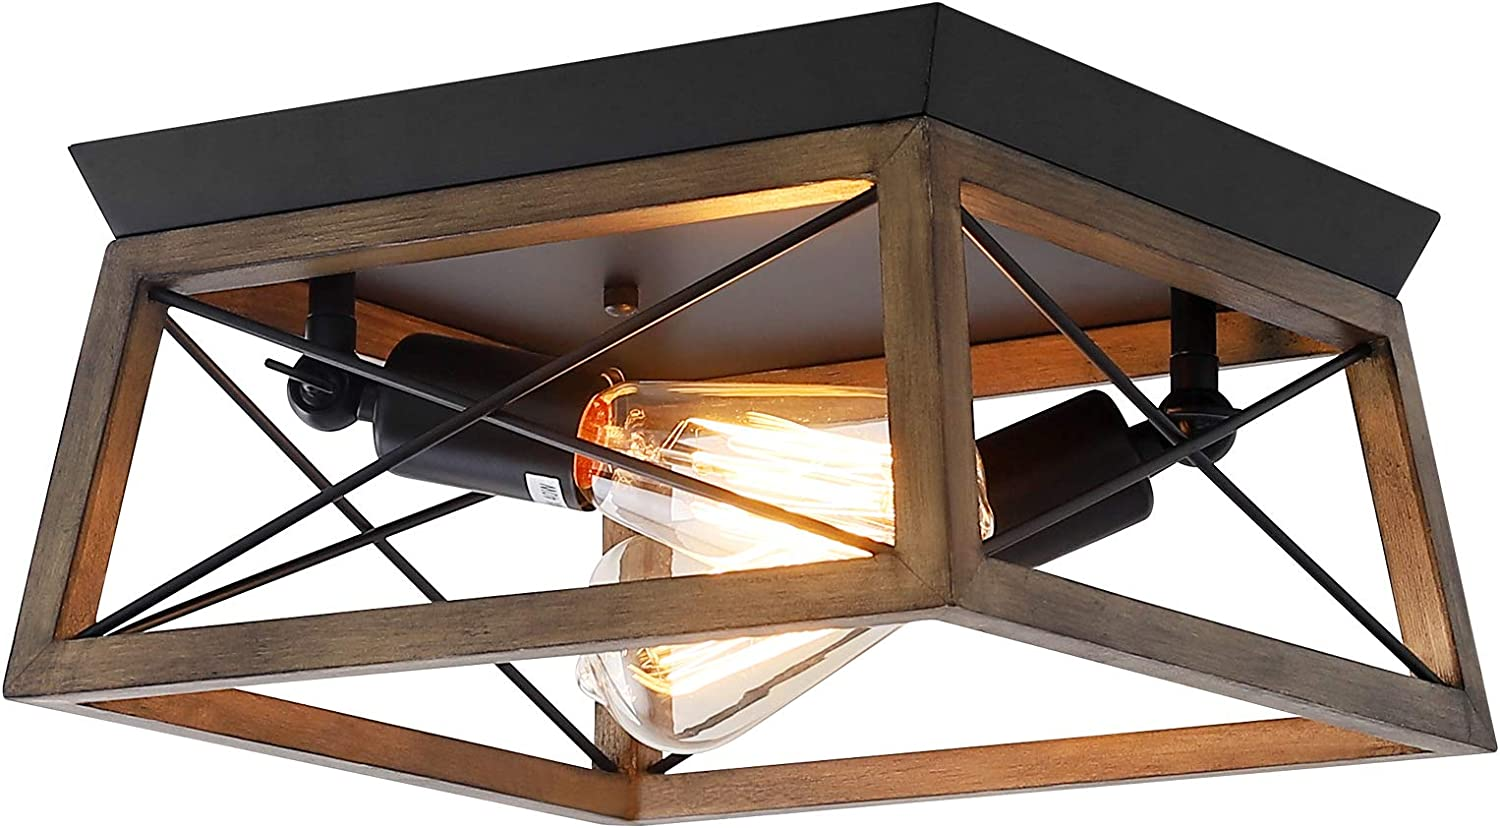 2-Light Farmhouse Flush Mount Ceiling Light, Square Farmhouse Light Fixtures, Rustic Industrial Ceiling Fixture with Wood Shade for Hallway, Entryway, Passway, Dining Room, Living Room